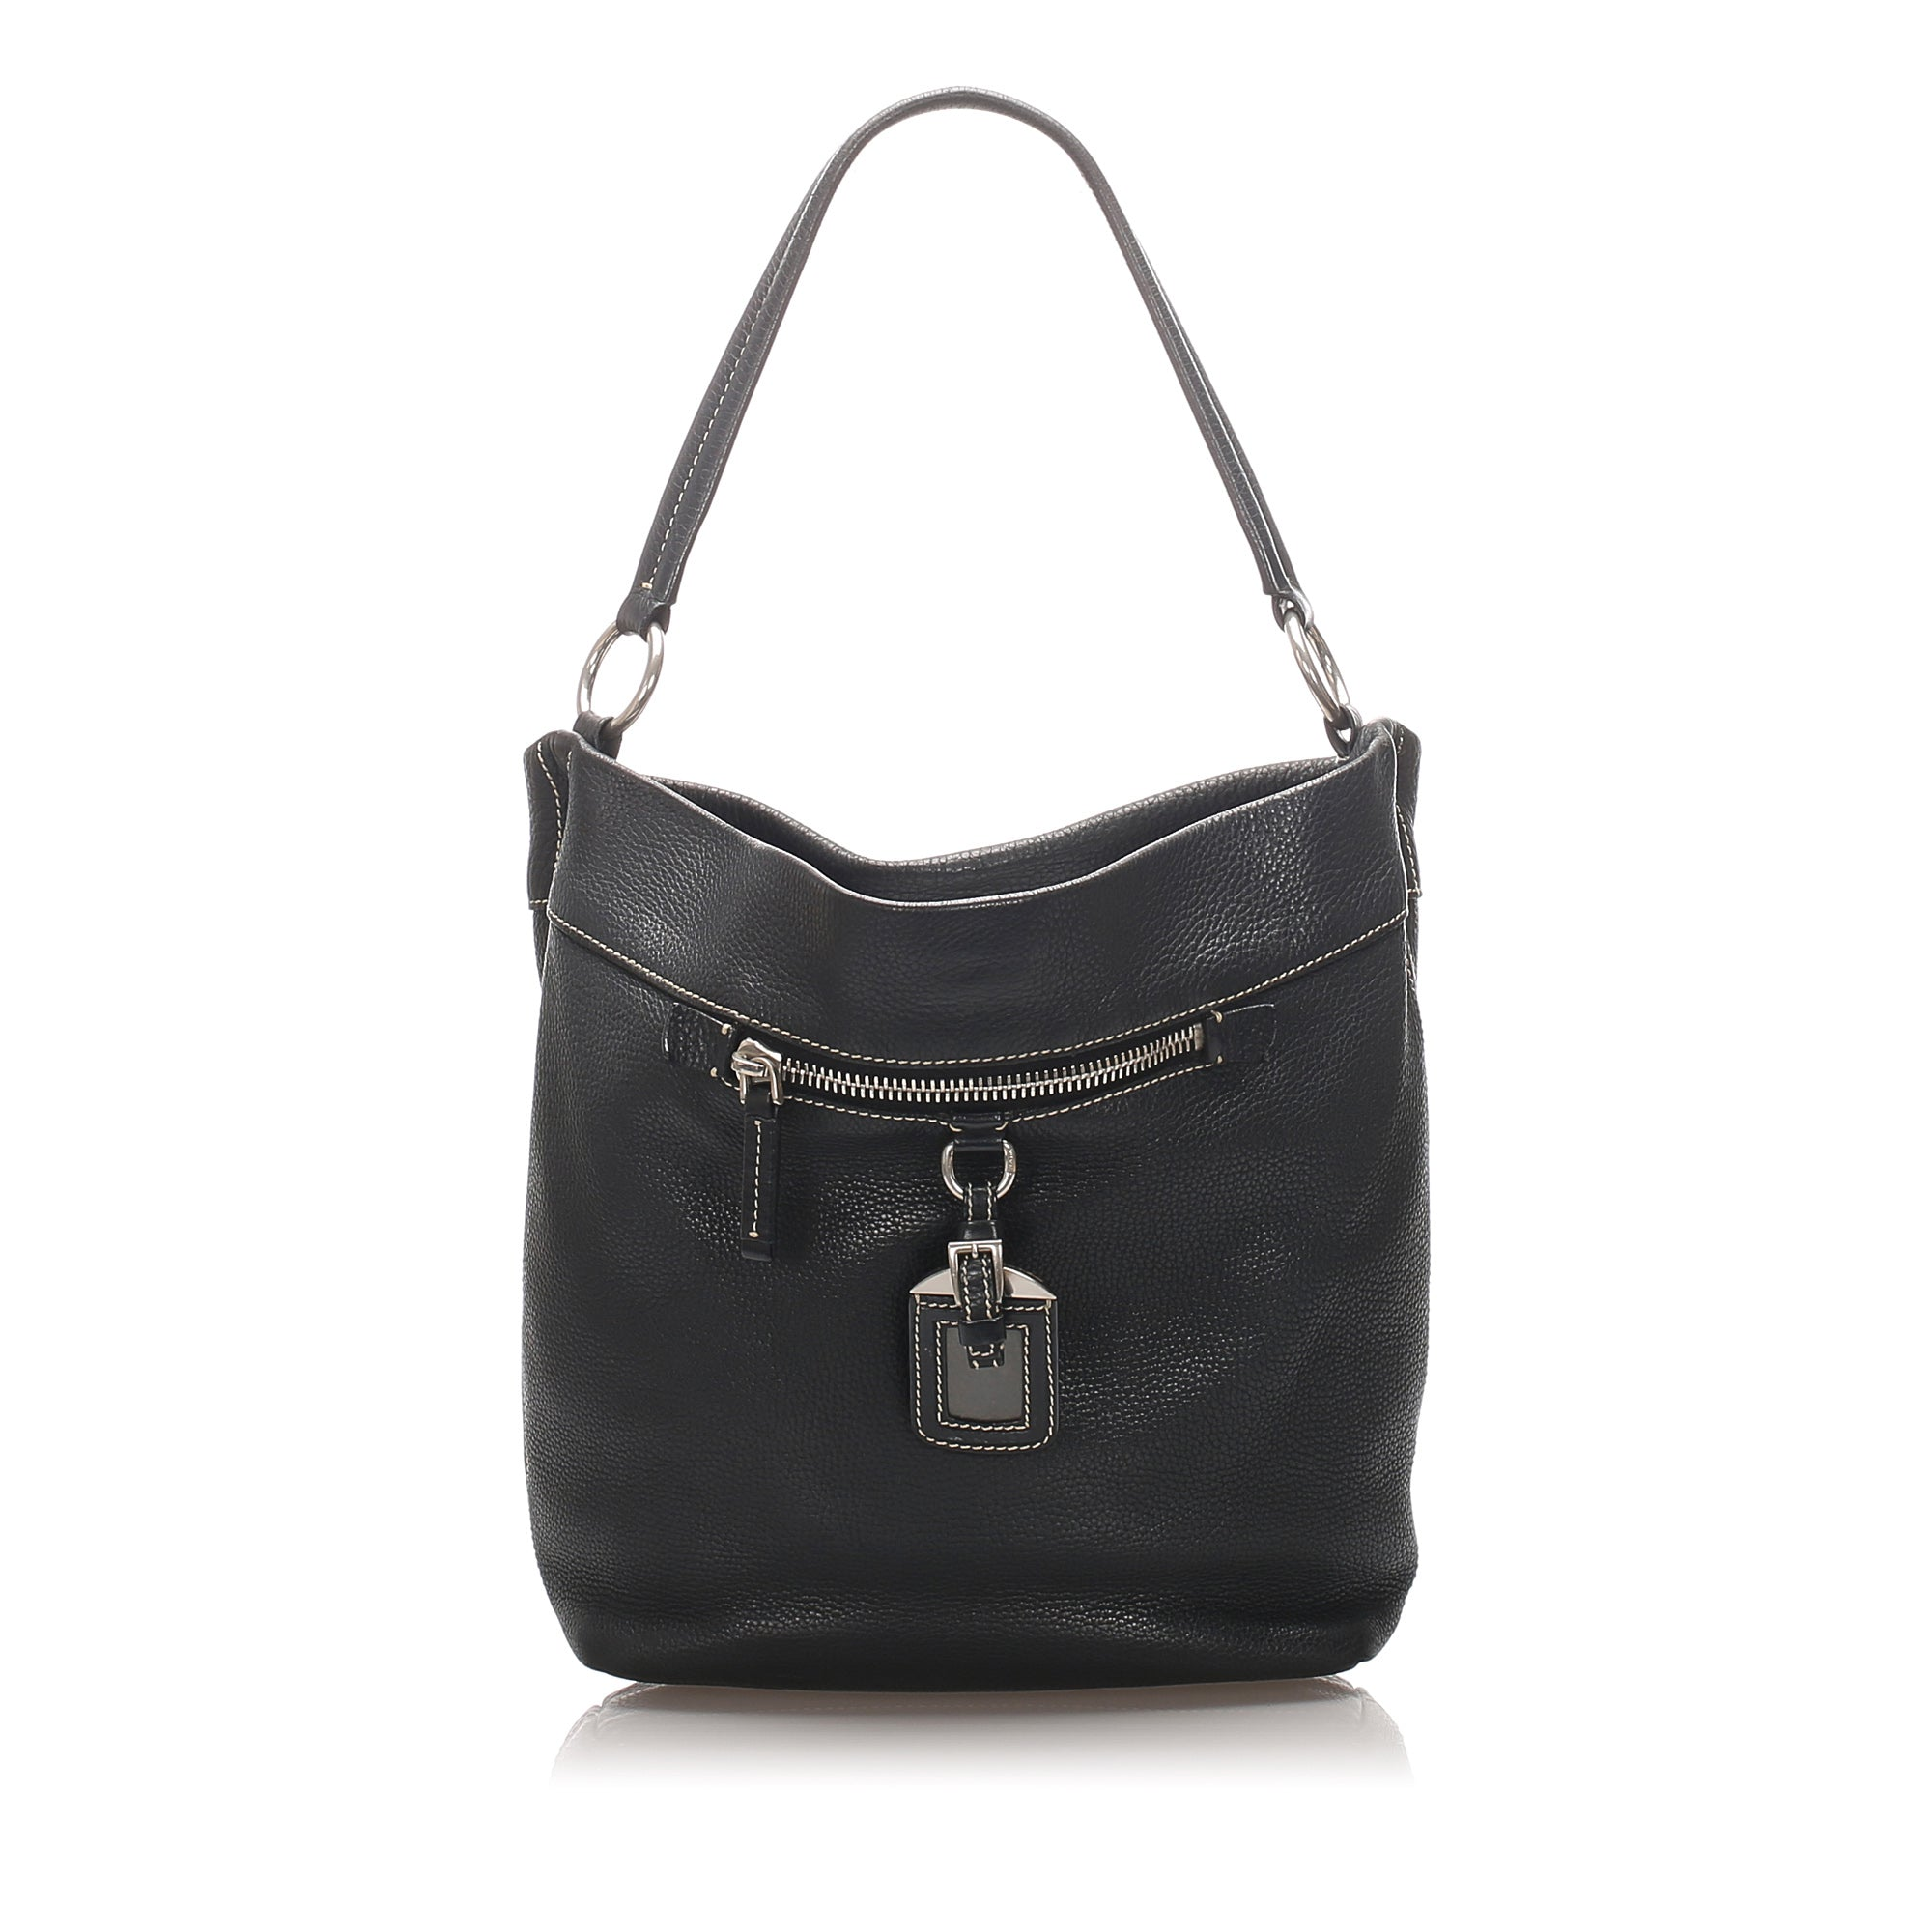 Prada Black Vitello Daino Leather Shoulder Bag